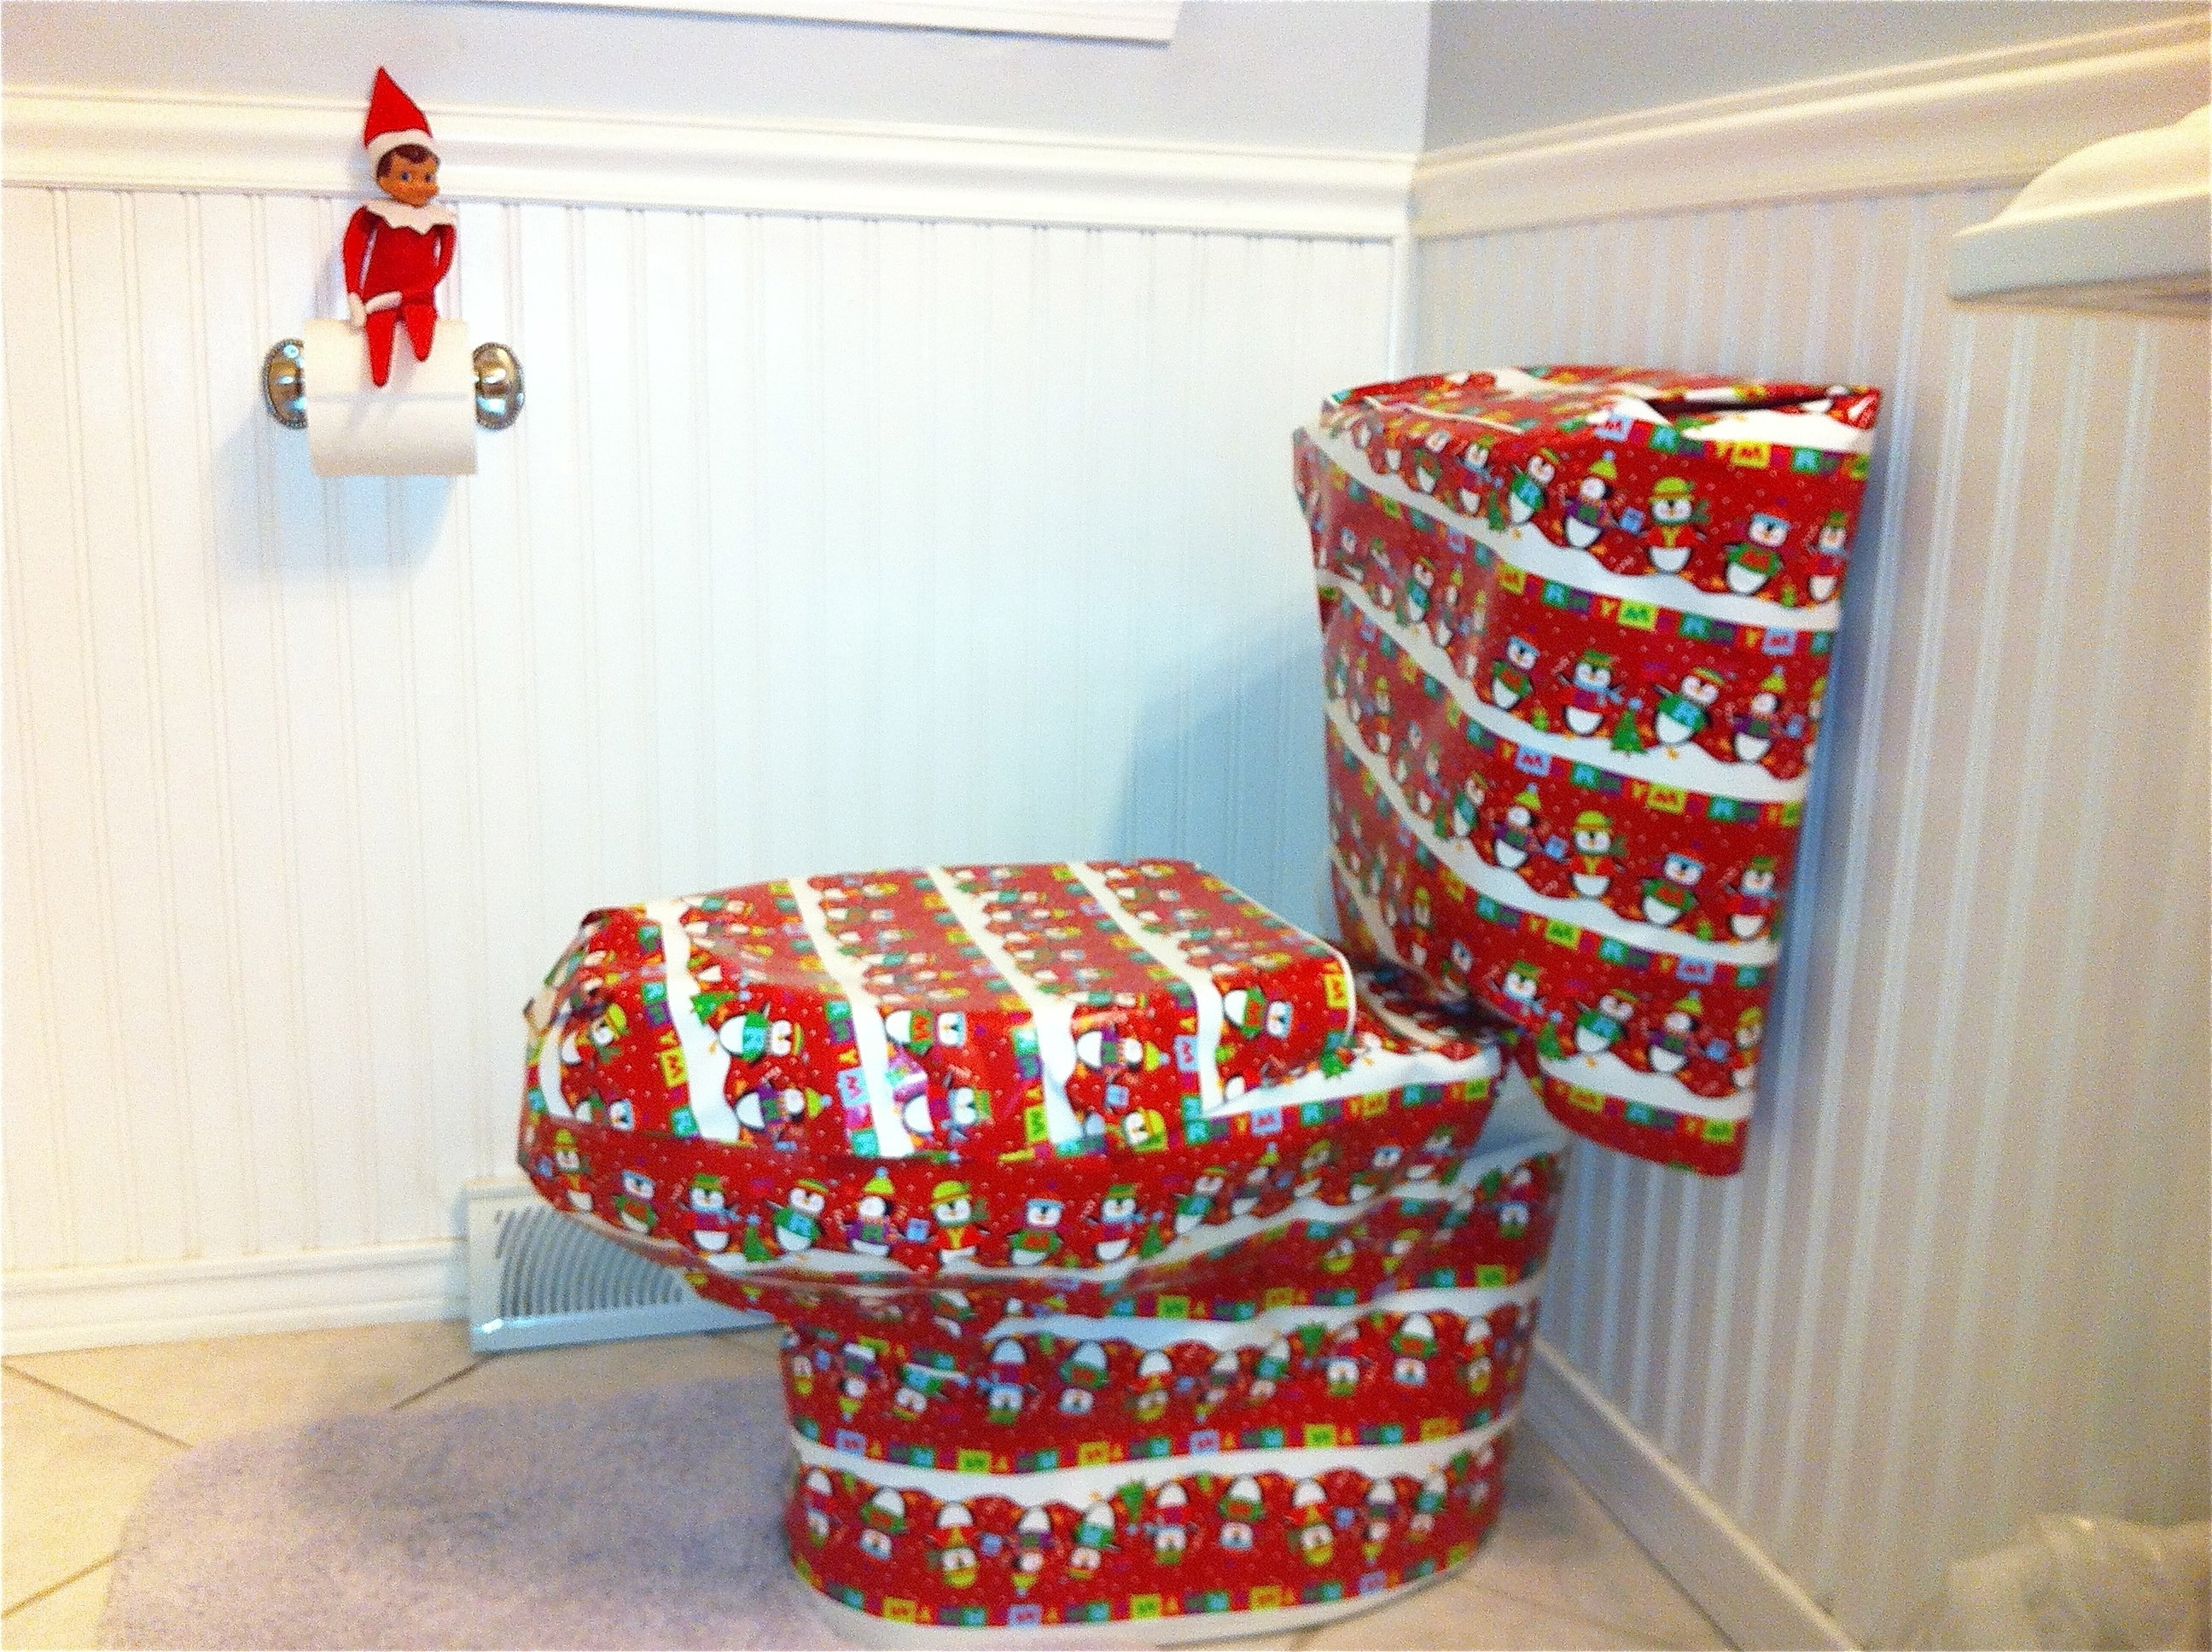 10 Pretty Ideas For Elf On A Shelf 25 elf on the shelf quick and easy ideas that take under 5 mins 2 2021